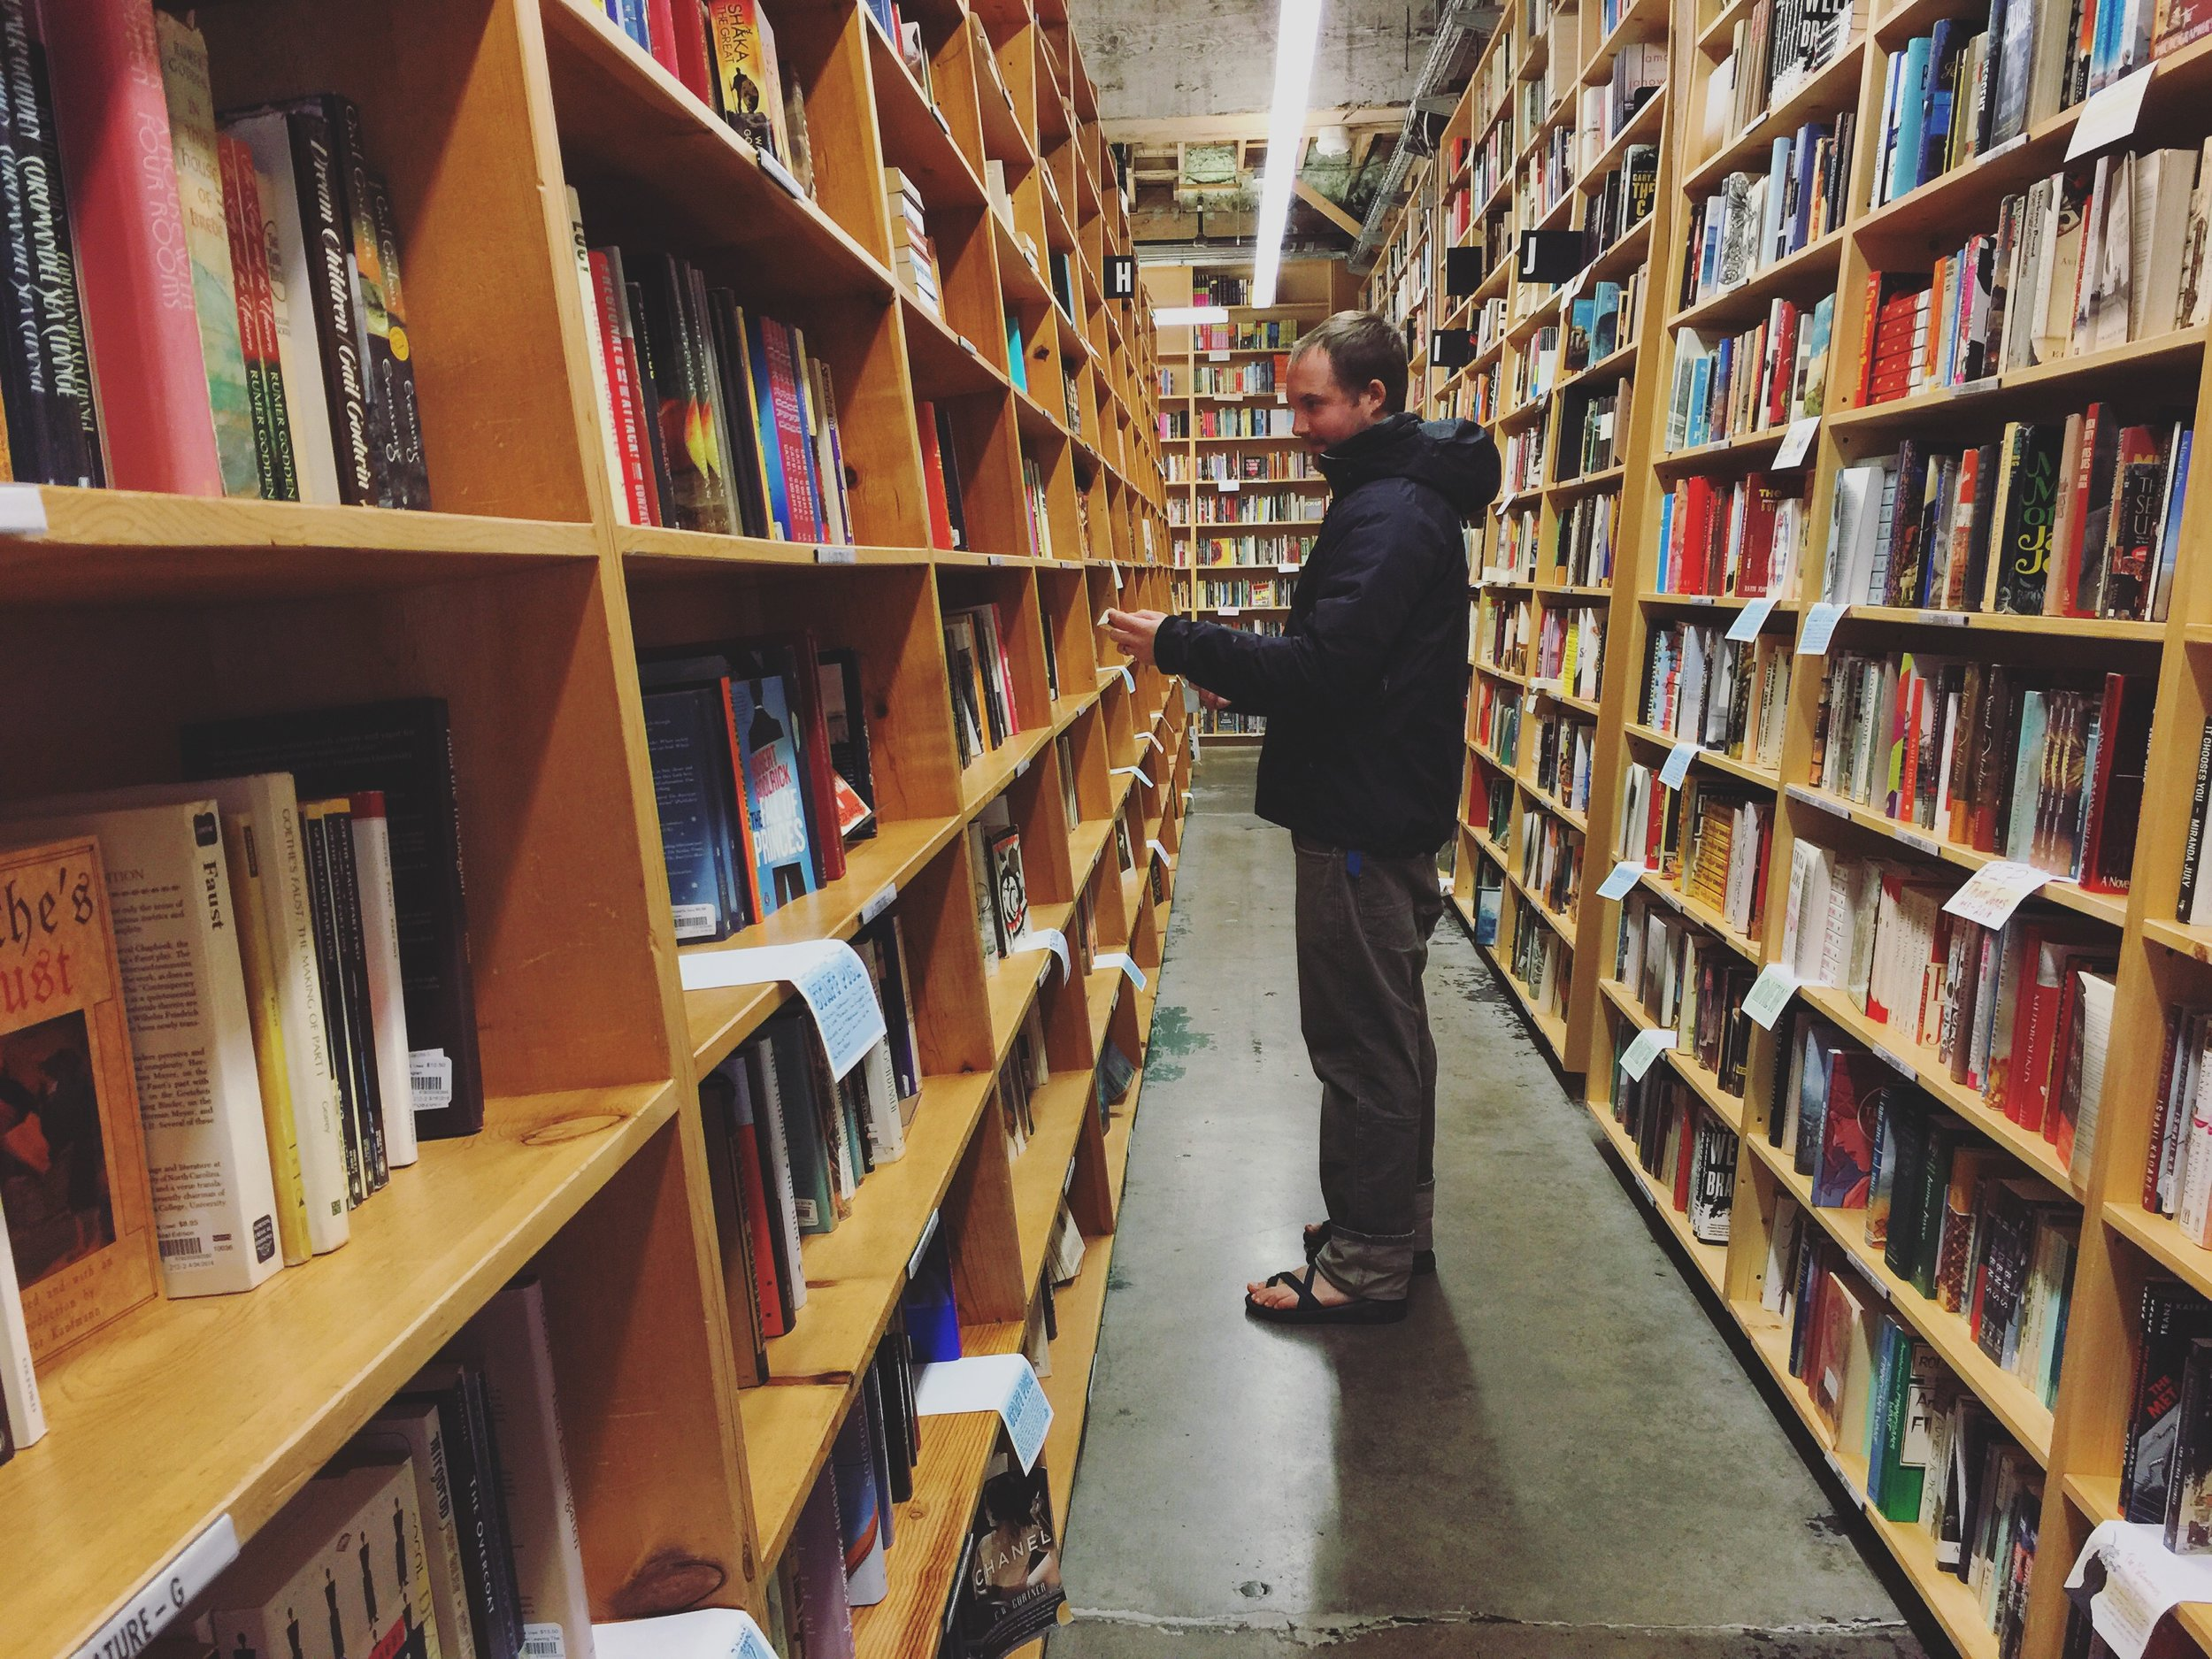 Powell's Book store…always a favorite, but Portland's 90 minute parking limit meant we had to browse quick!!!